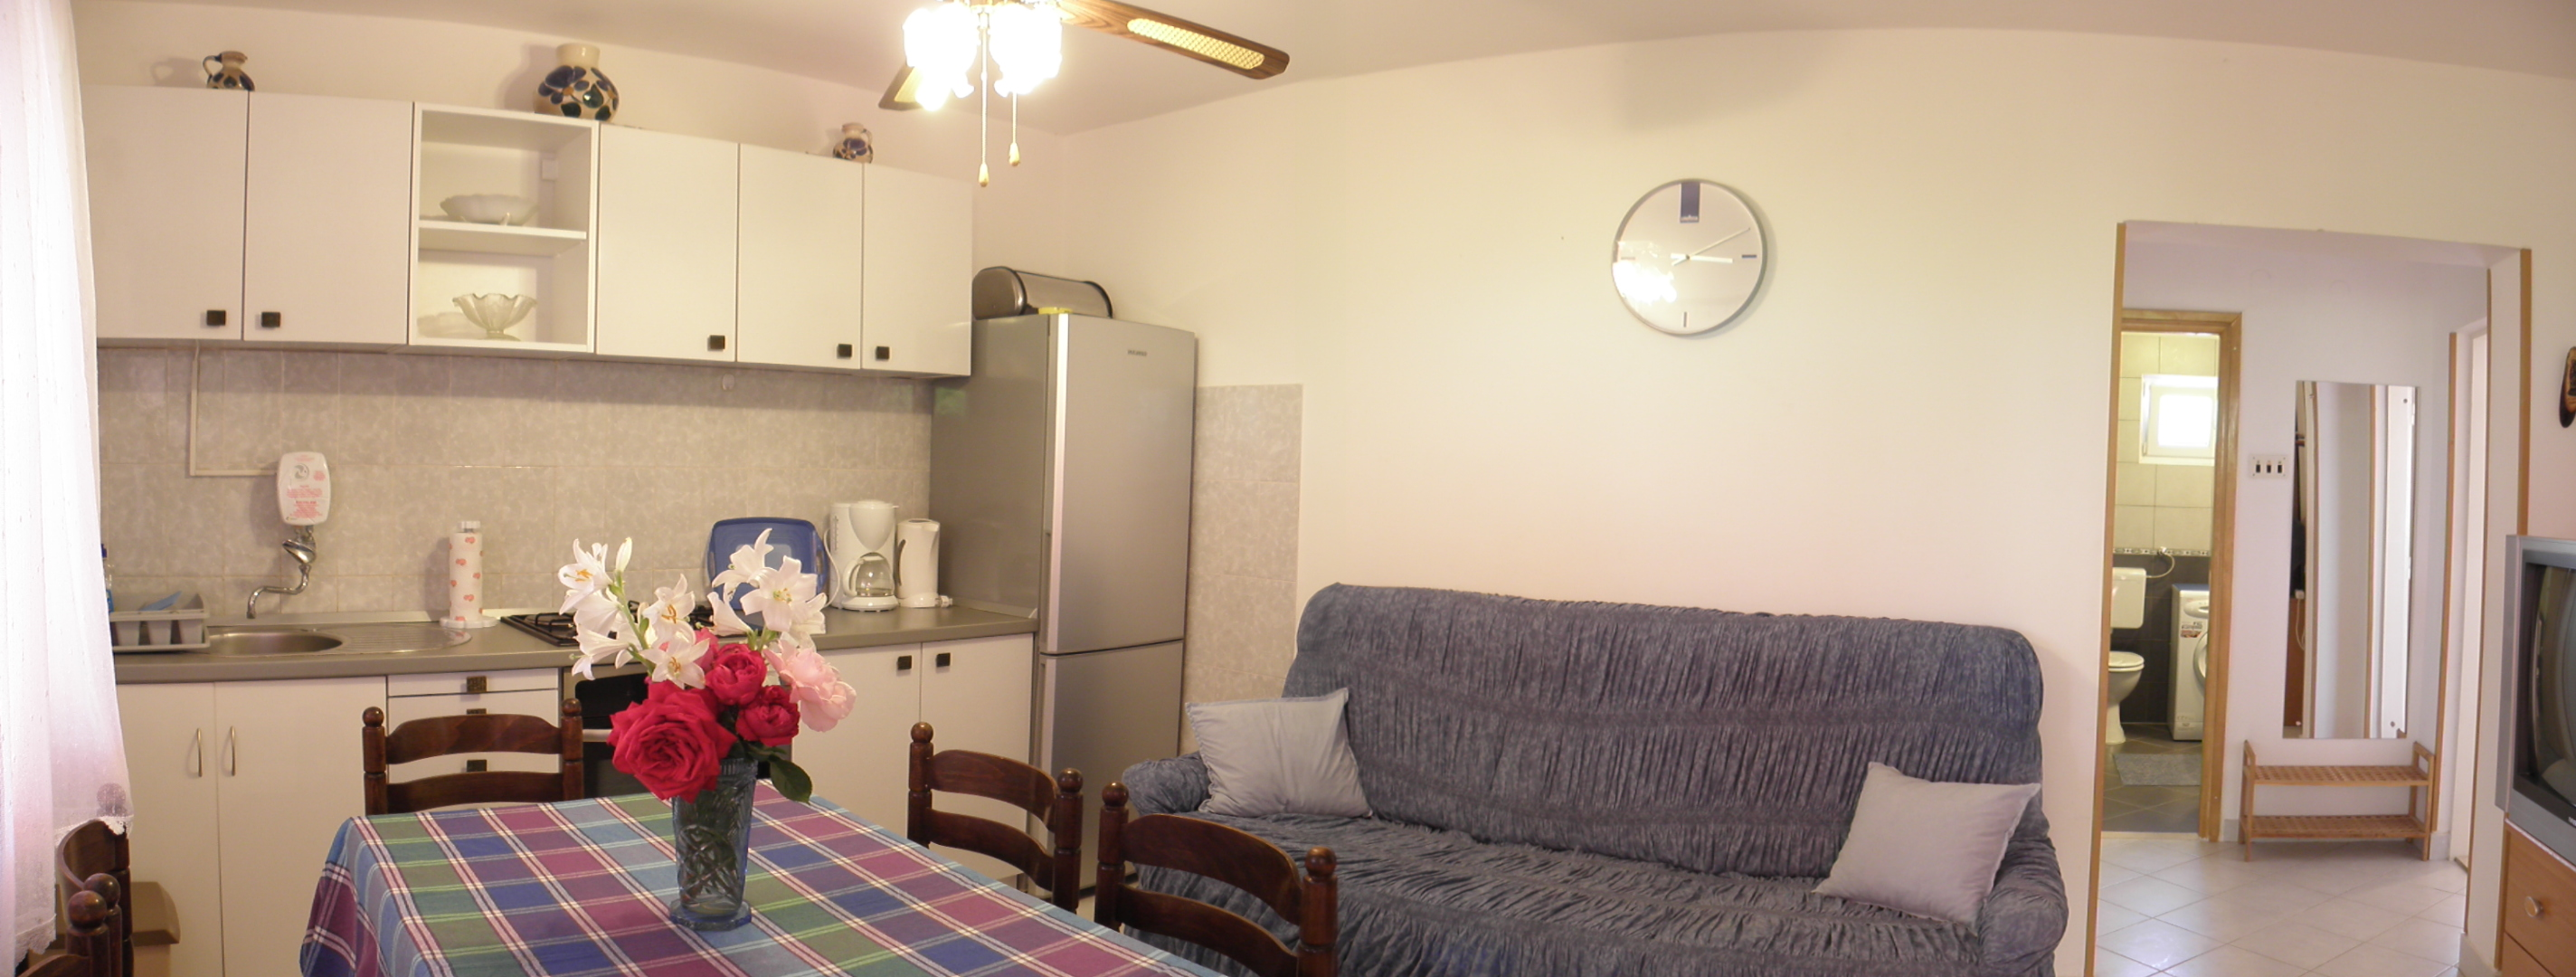 The Apartment Also Have Included In The Bathroom With Shower An Washing  Machine. The Kitchen Have An Fridge, Oven, Stove, Microwave And Coffee Maker .